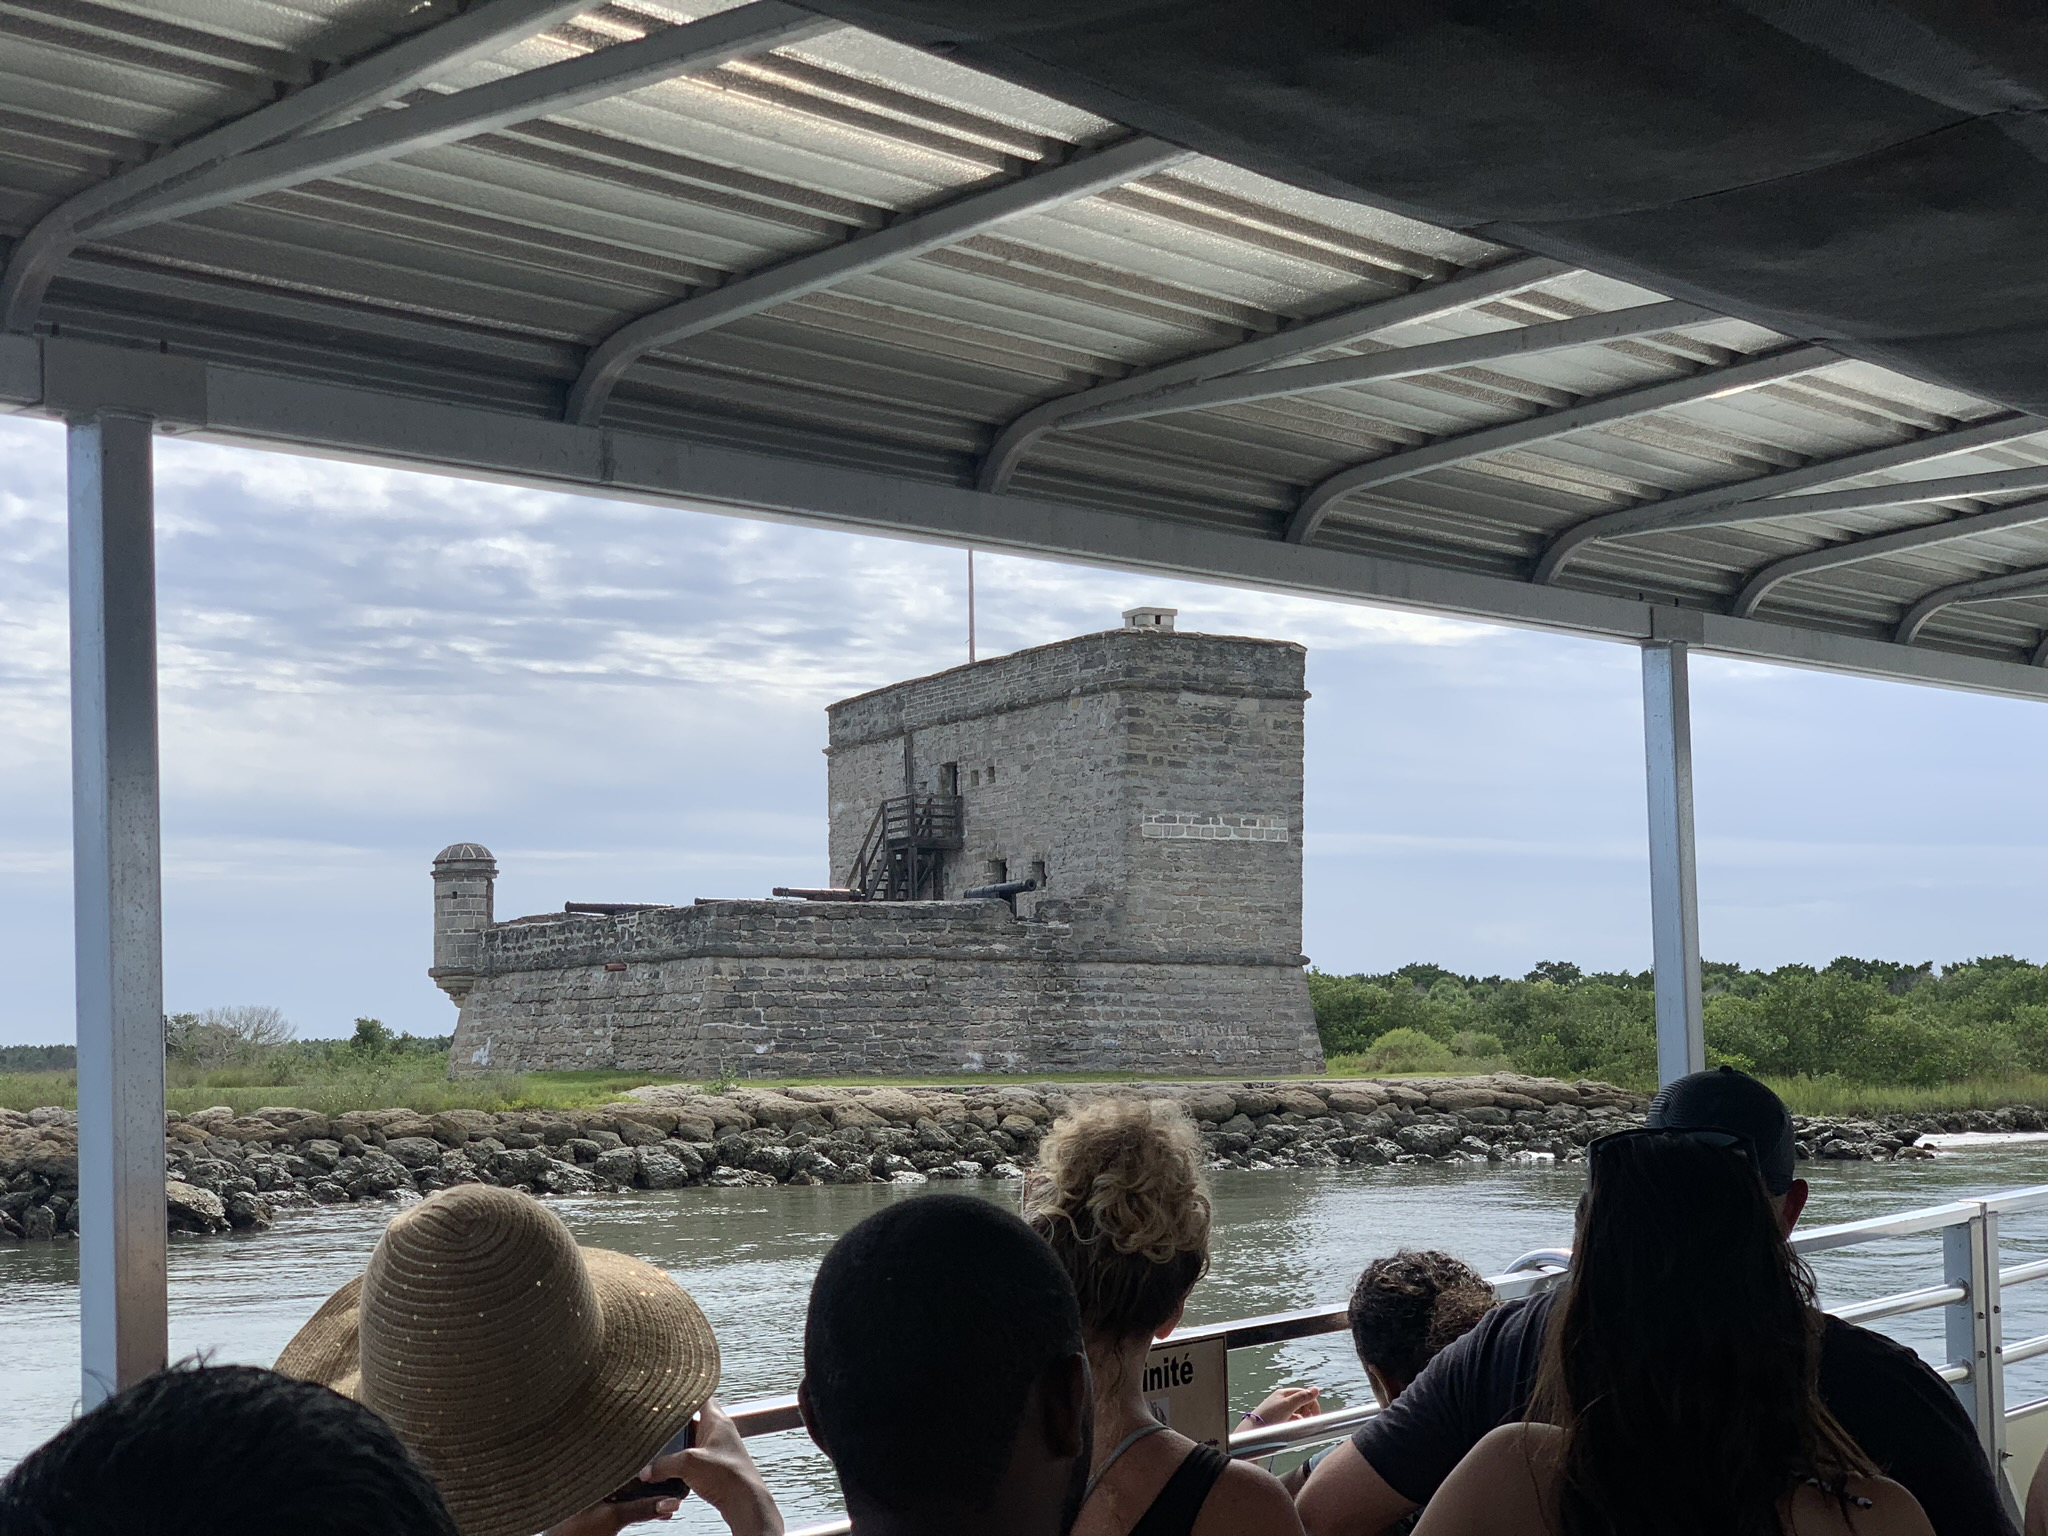 National Monument in St. Augustine